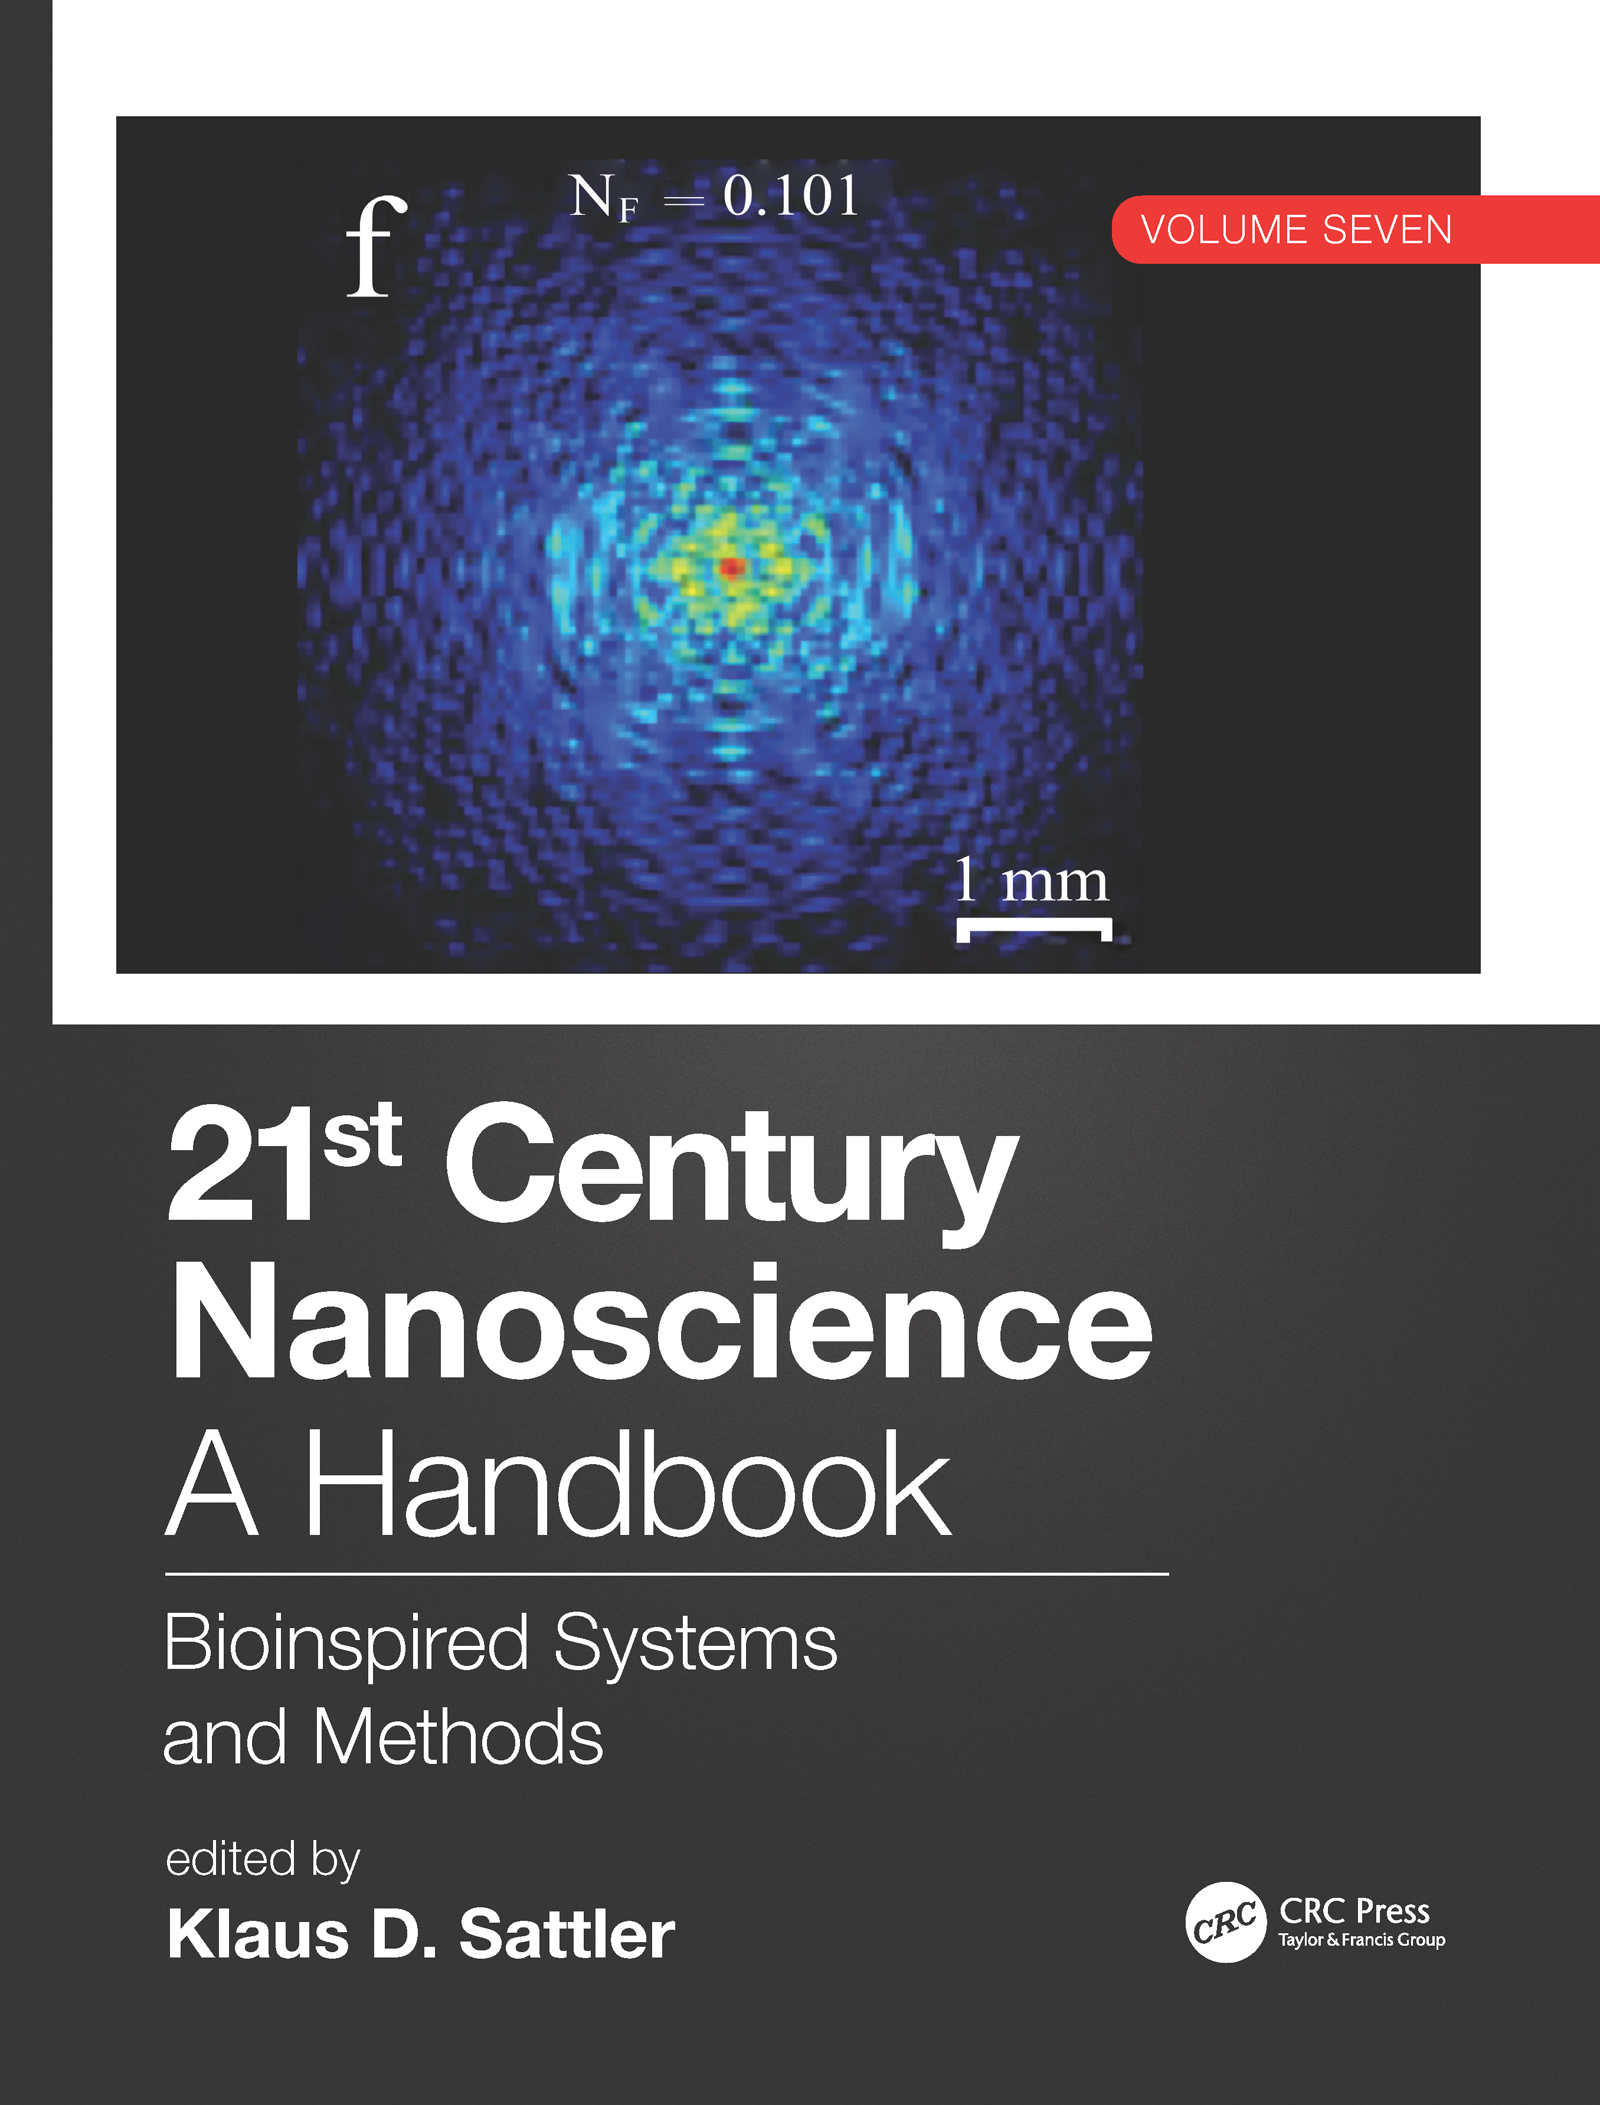 21st Century Nanoscience – A Handbook: Bioinspired Systems and Methods (Volume Seven) book cover